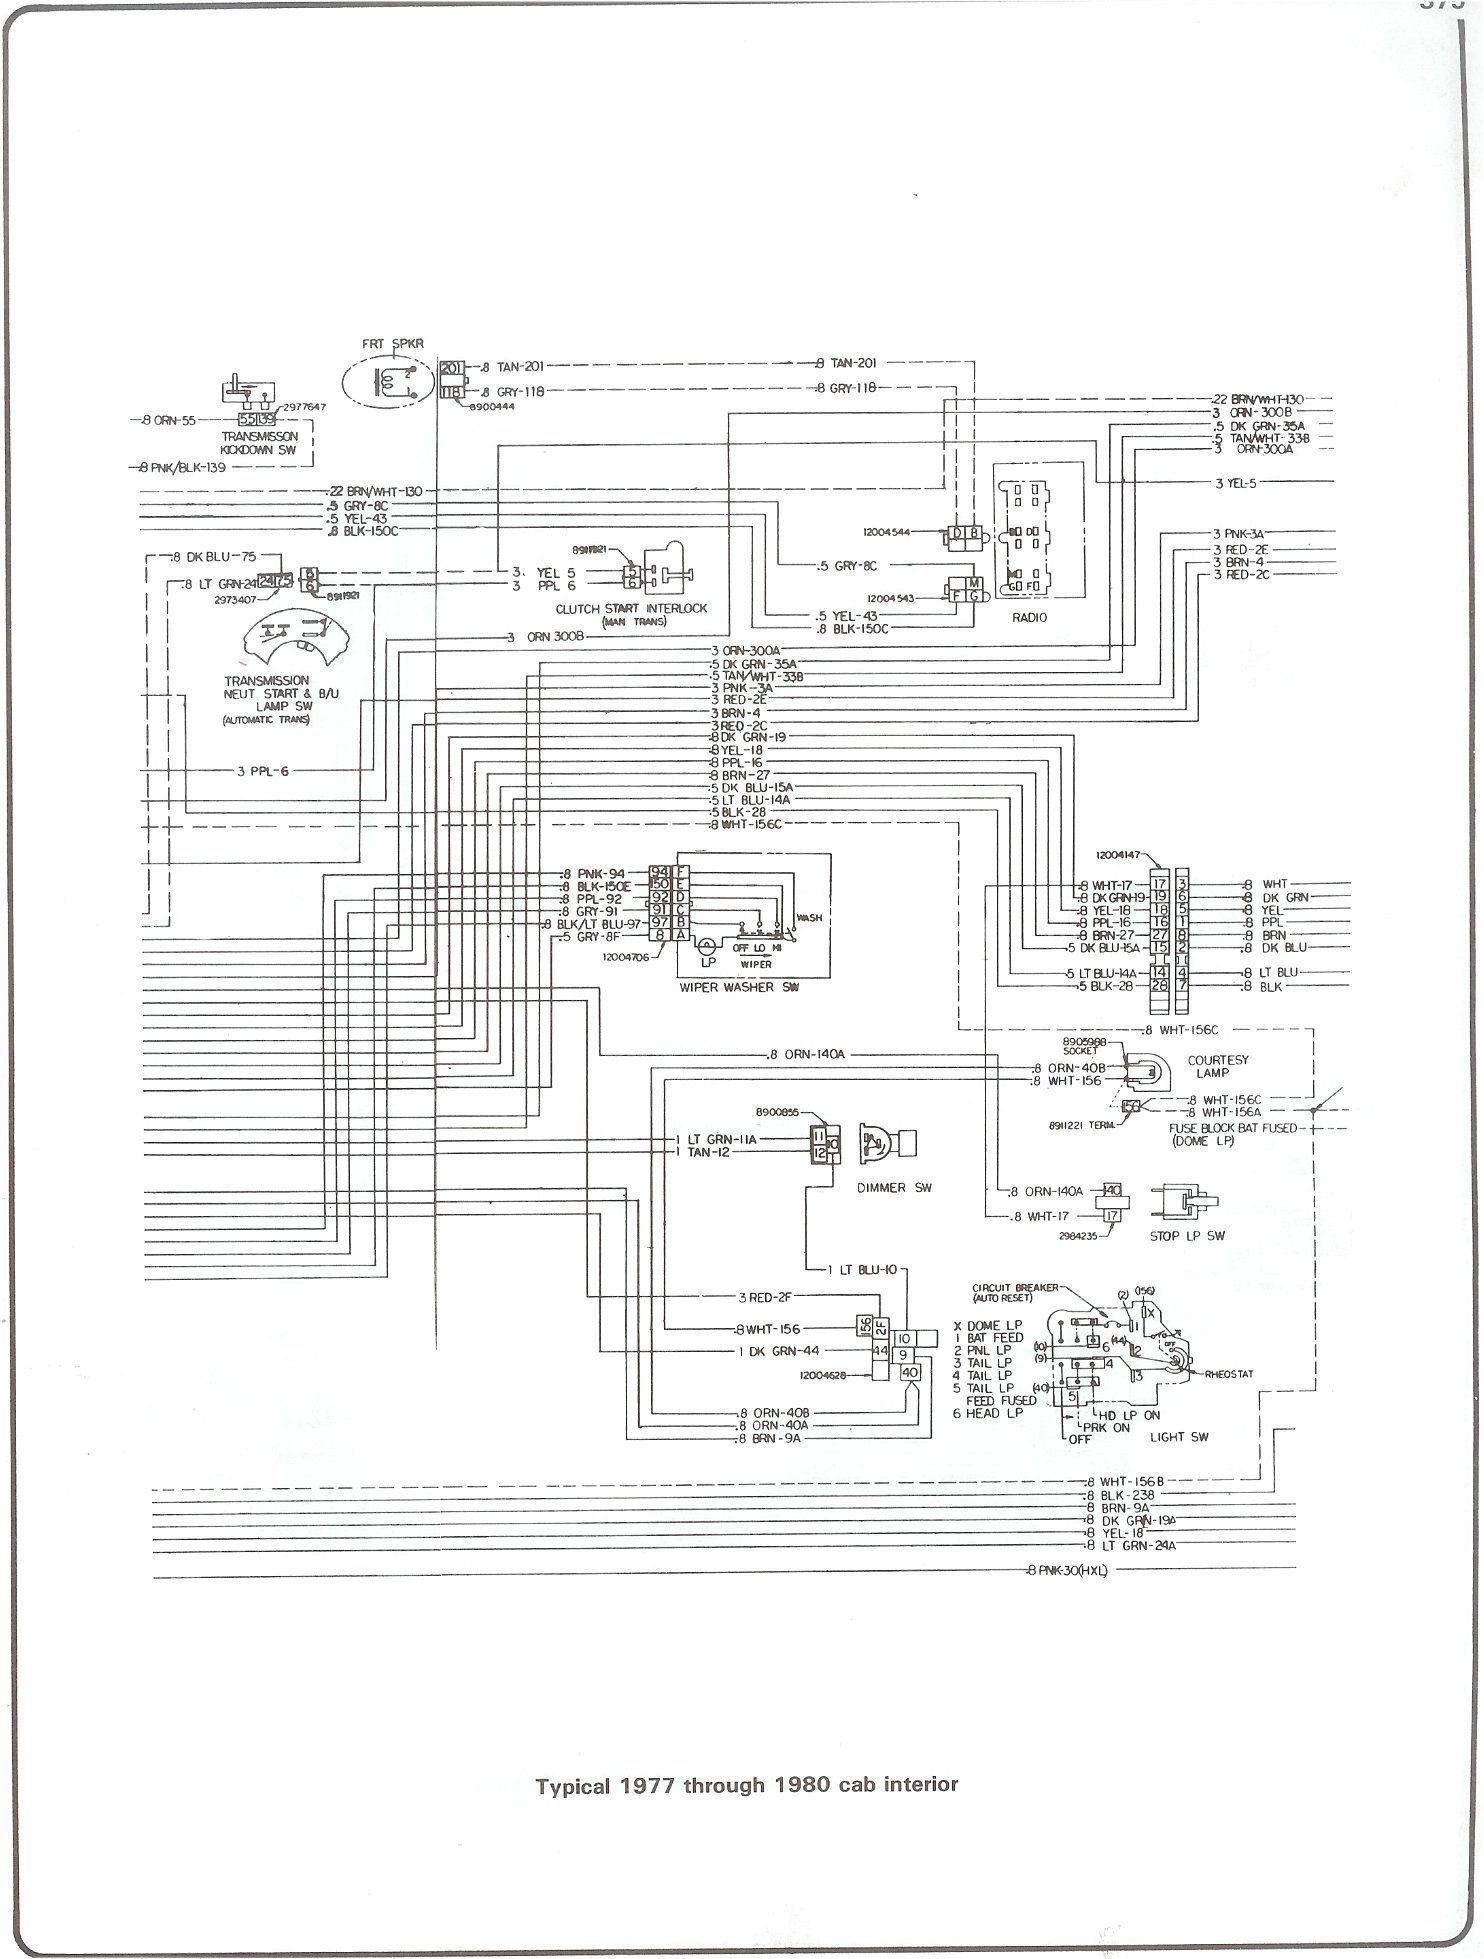 77 80_cab_inter complete 73 87 wiring diagrams gm wiring harness diagram at eliteediting.co